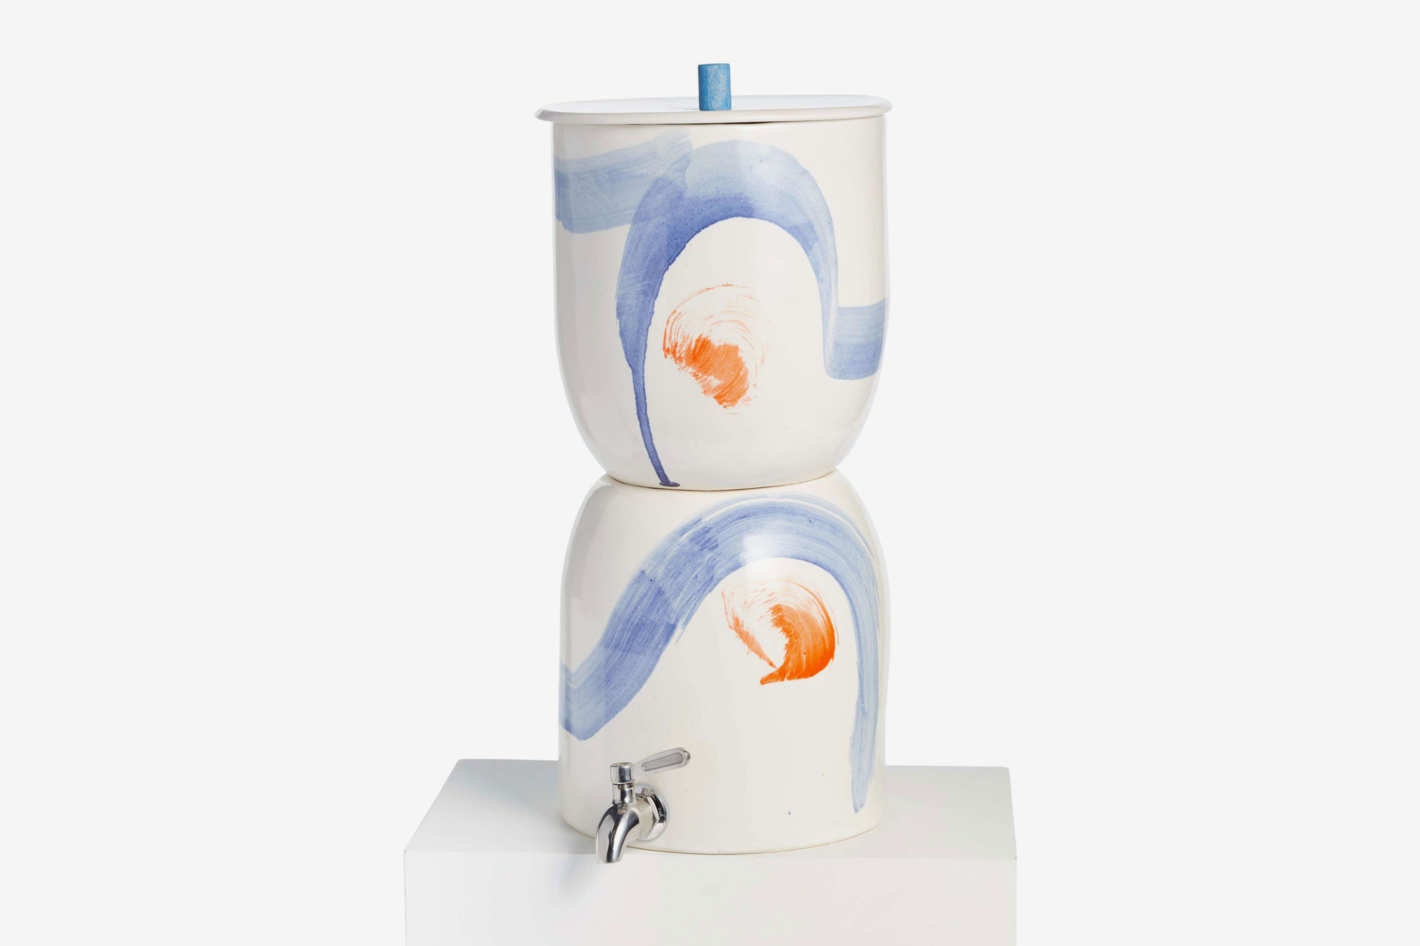 Painted Porcelain Water Filter